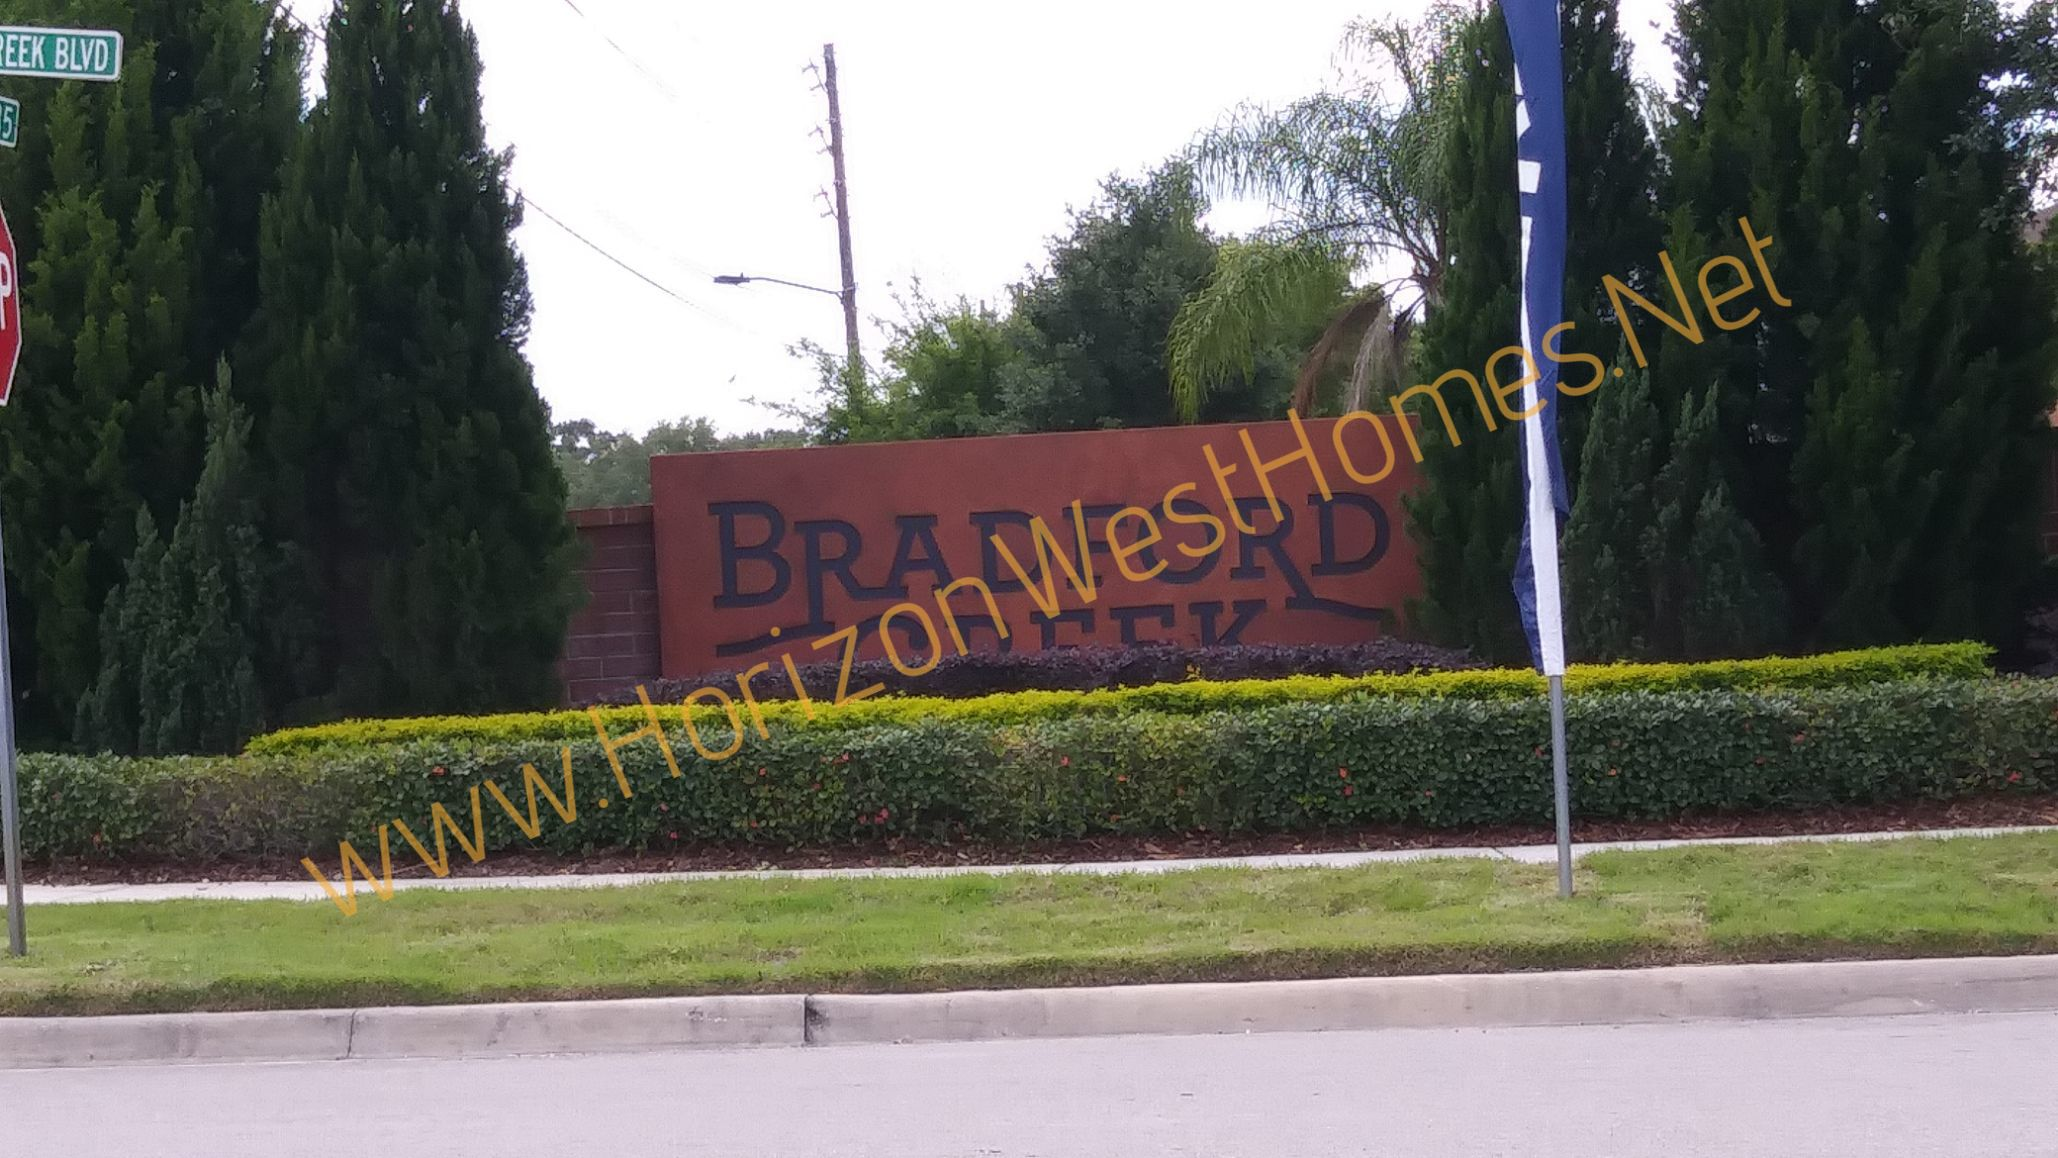 Bradford creek homes for sale. Gated Community Winter Garden Florida entrance sign. Real estate luxury homes